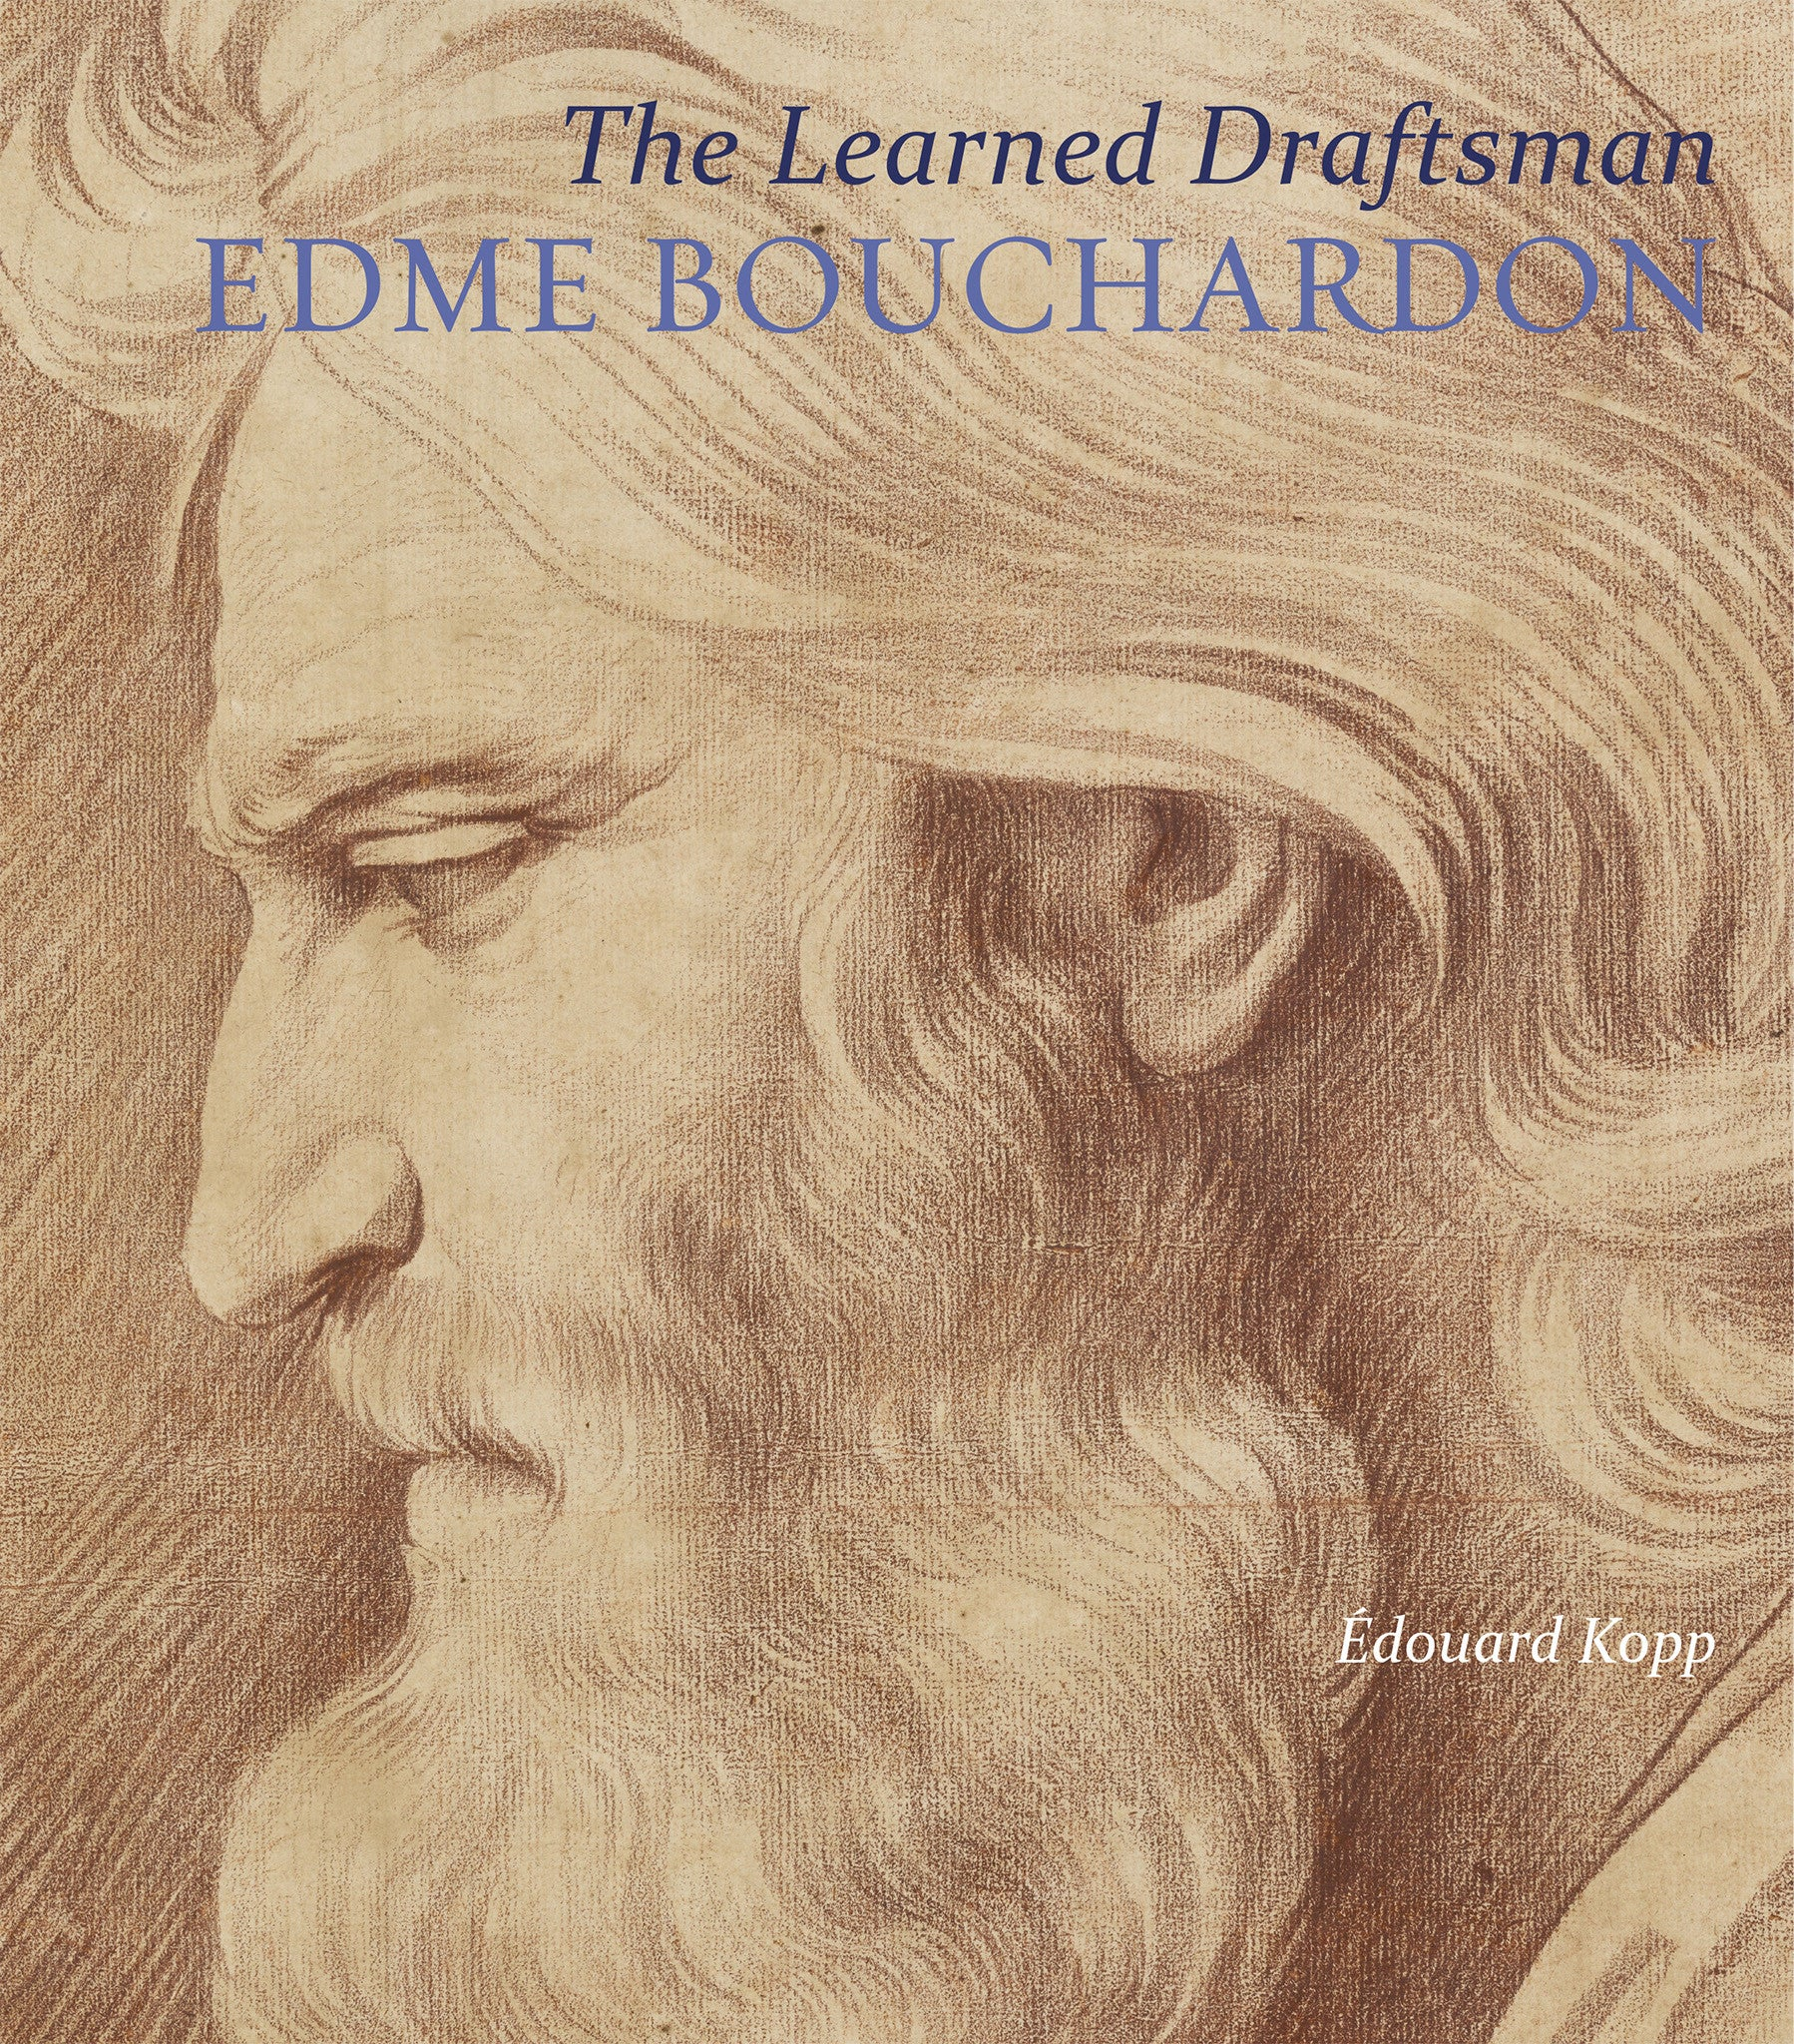 The Learned Draftsman: Edme Bouchardon